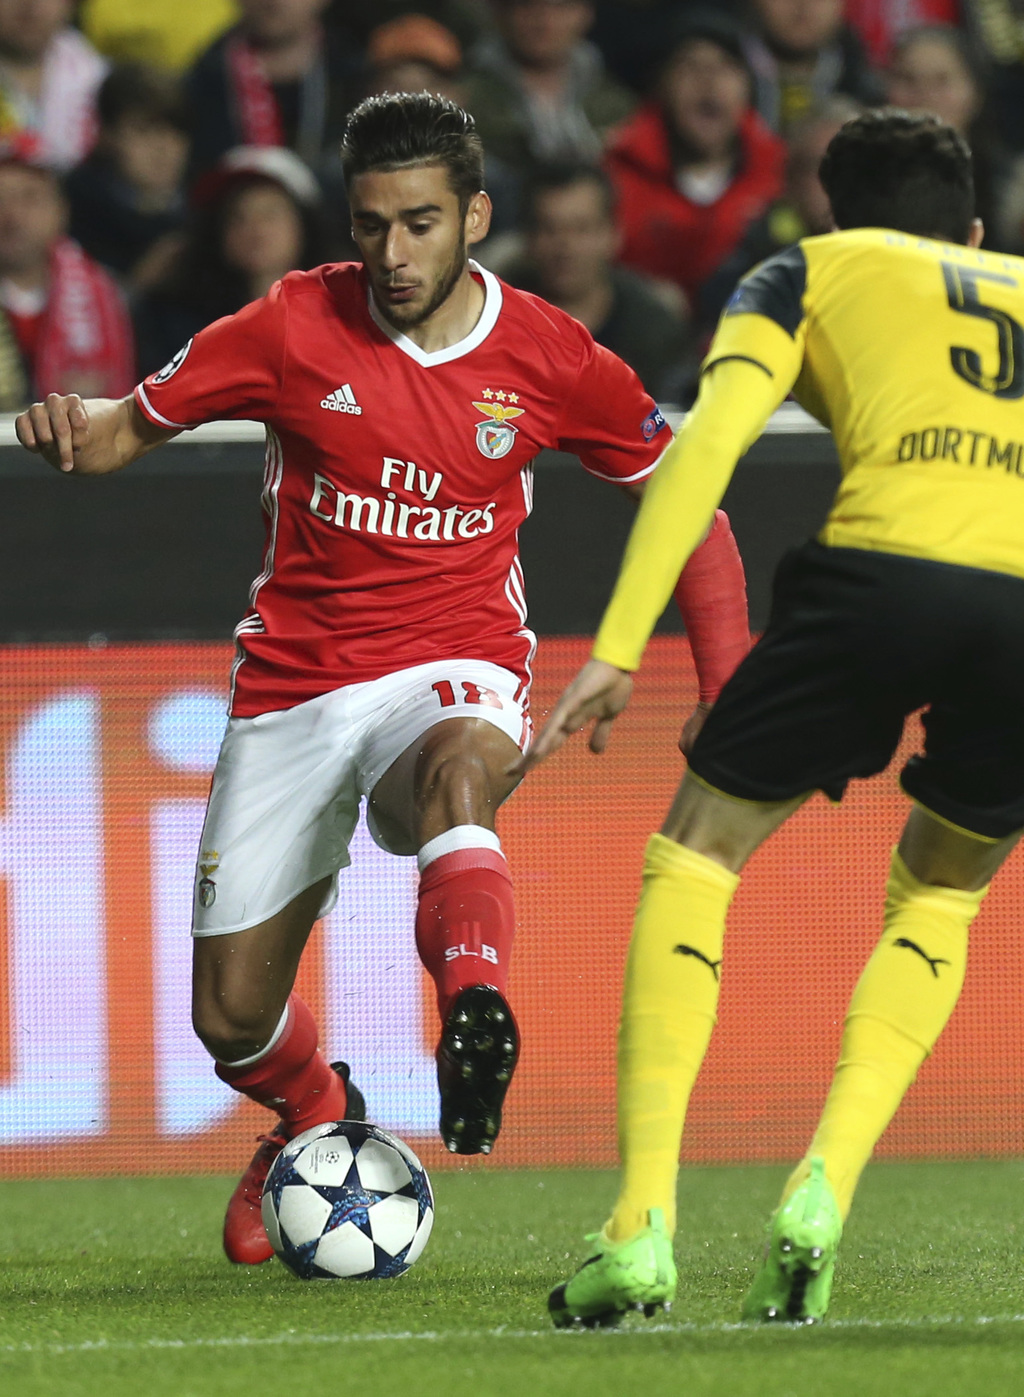 Benfica's Eduardo Salvio fights for the ball against Dortmund's Marc Bartra during the Champions League round of 16, first leg, soccer ...